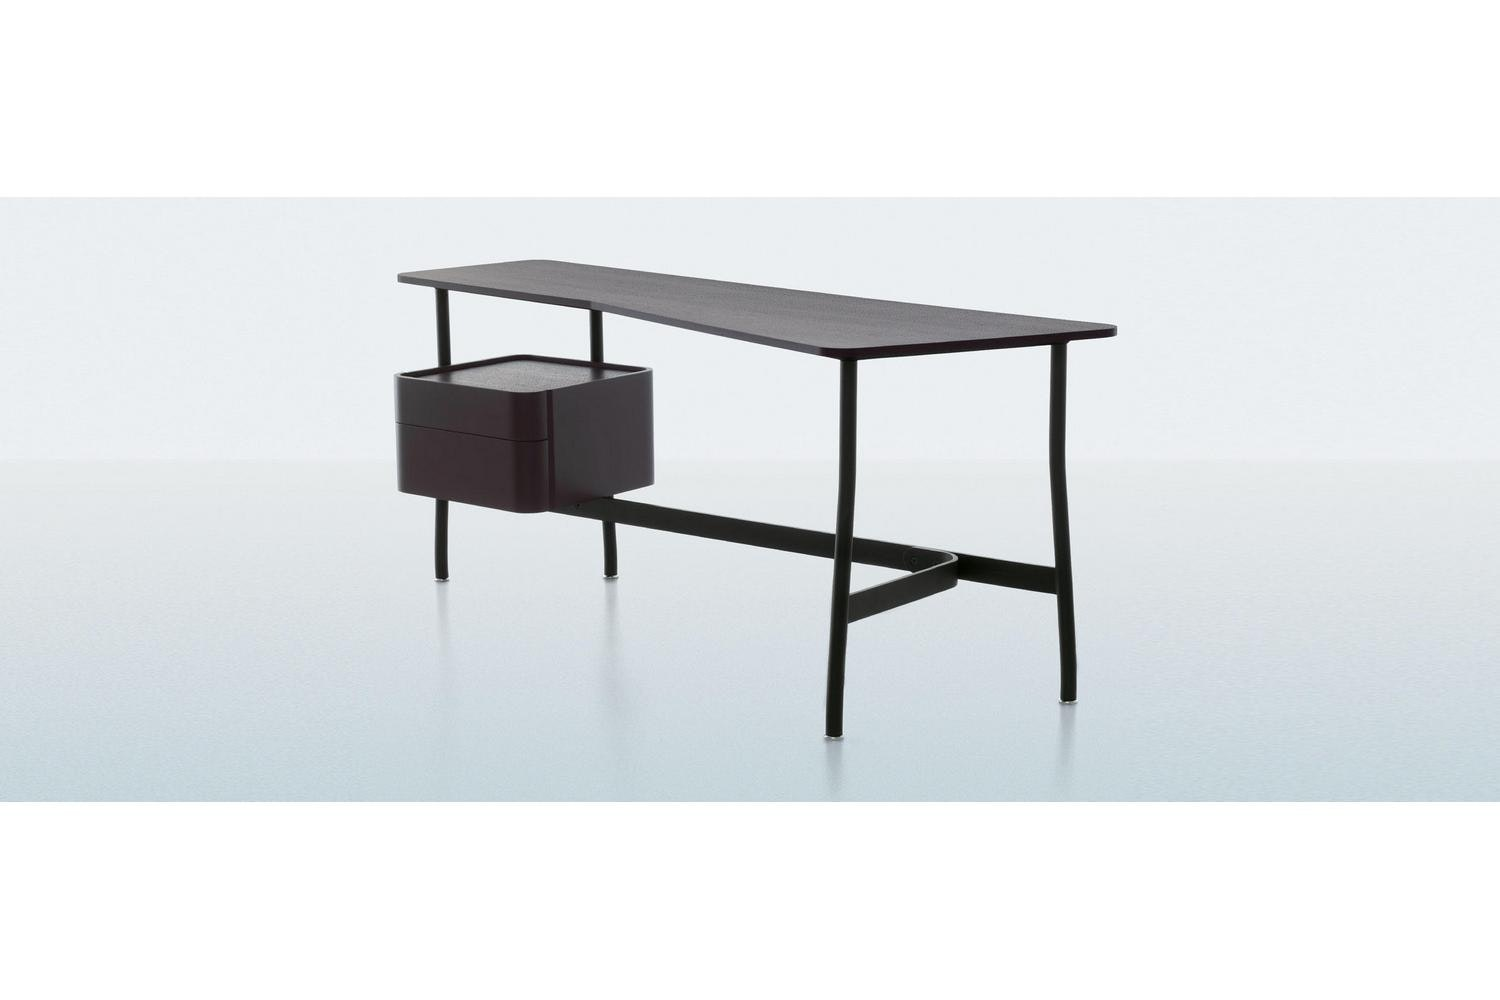 L40 Sled Desk by Rodolfo Dordoni for Cassina